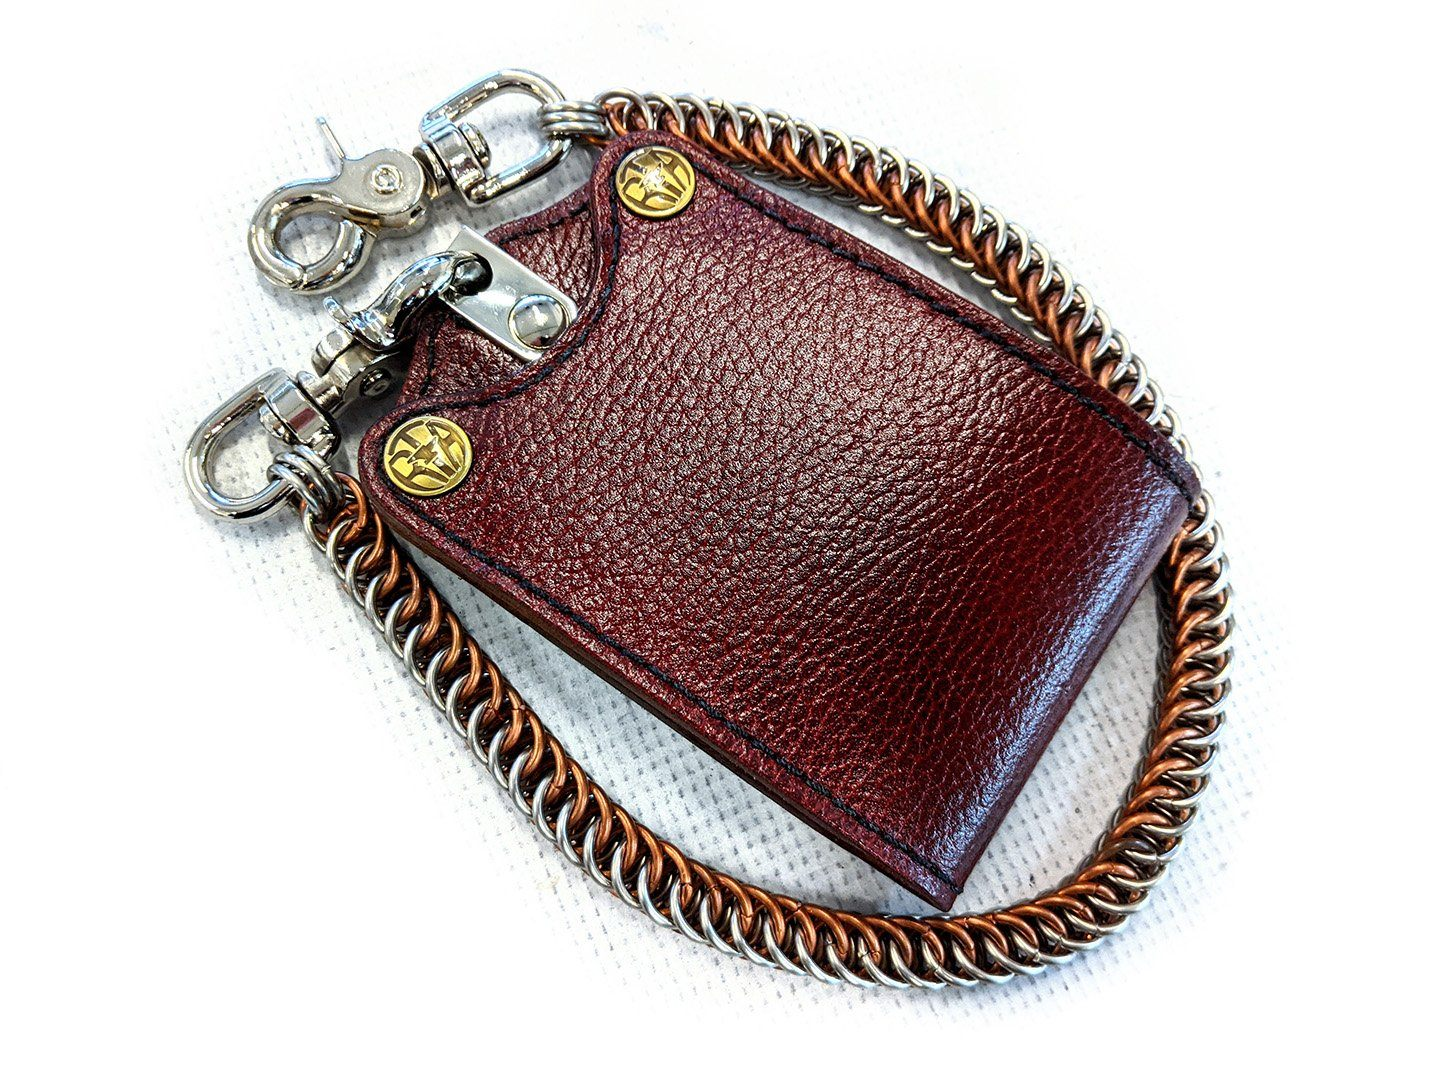 Bifold Leather Chain Wallet - Burgundy Cowhide